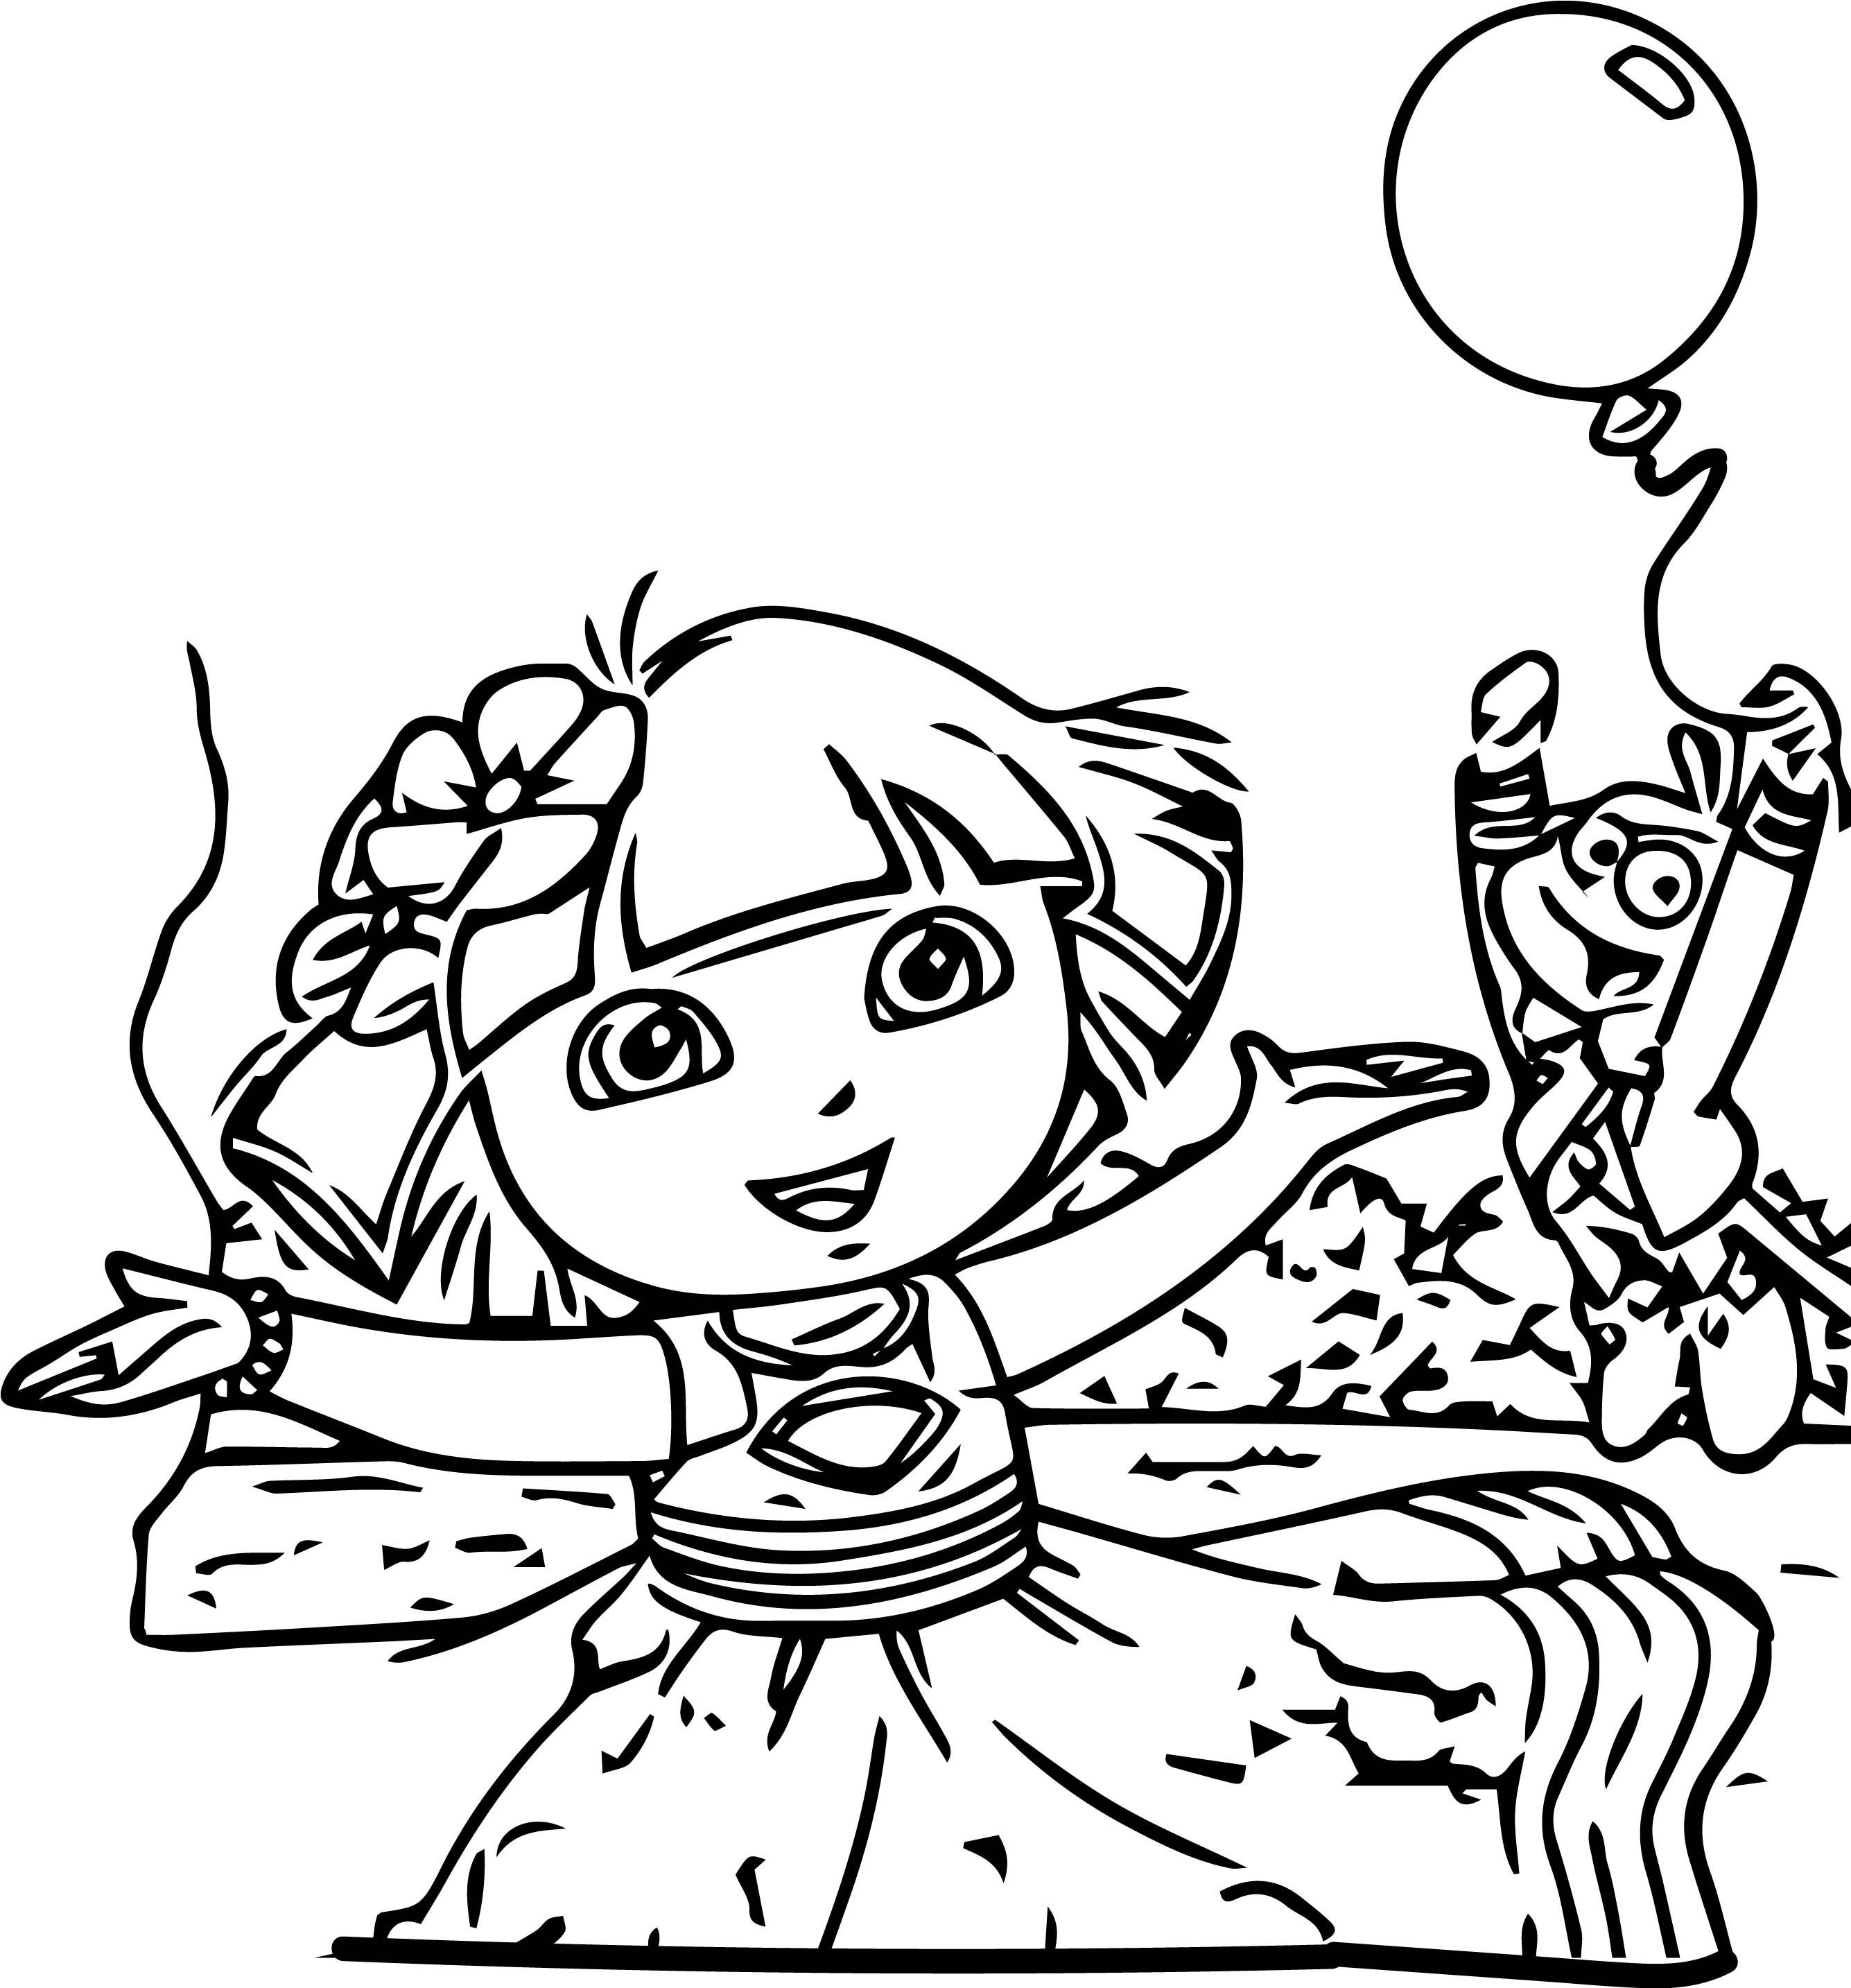 Dora The Explorer Lets Celebrate Cartoon Coloring Page